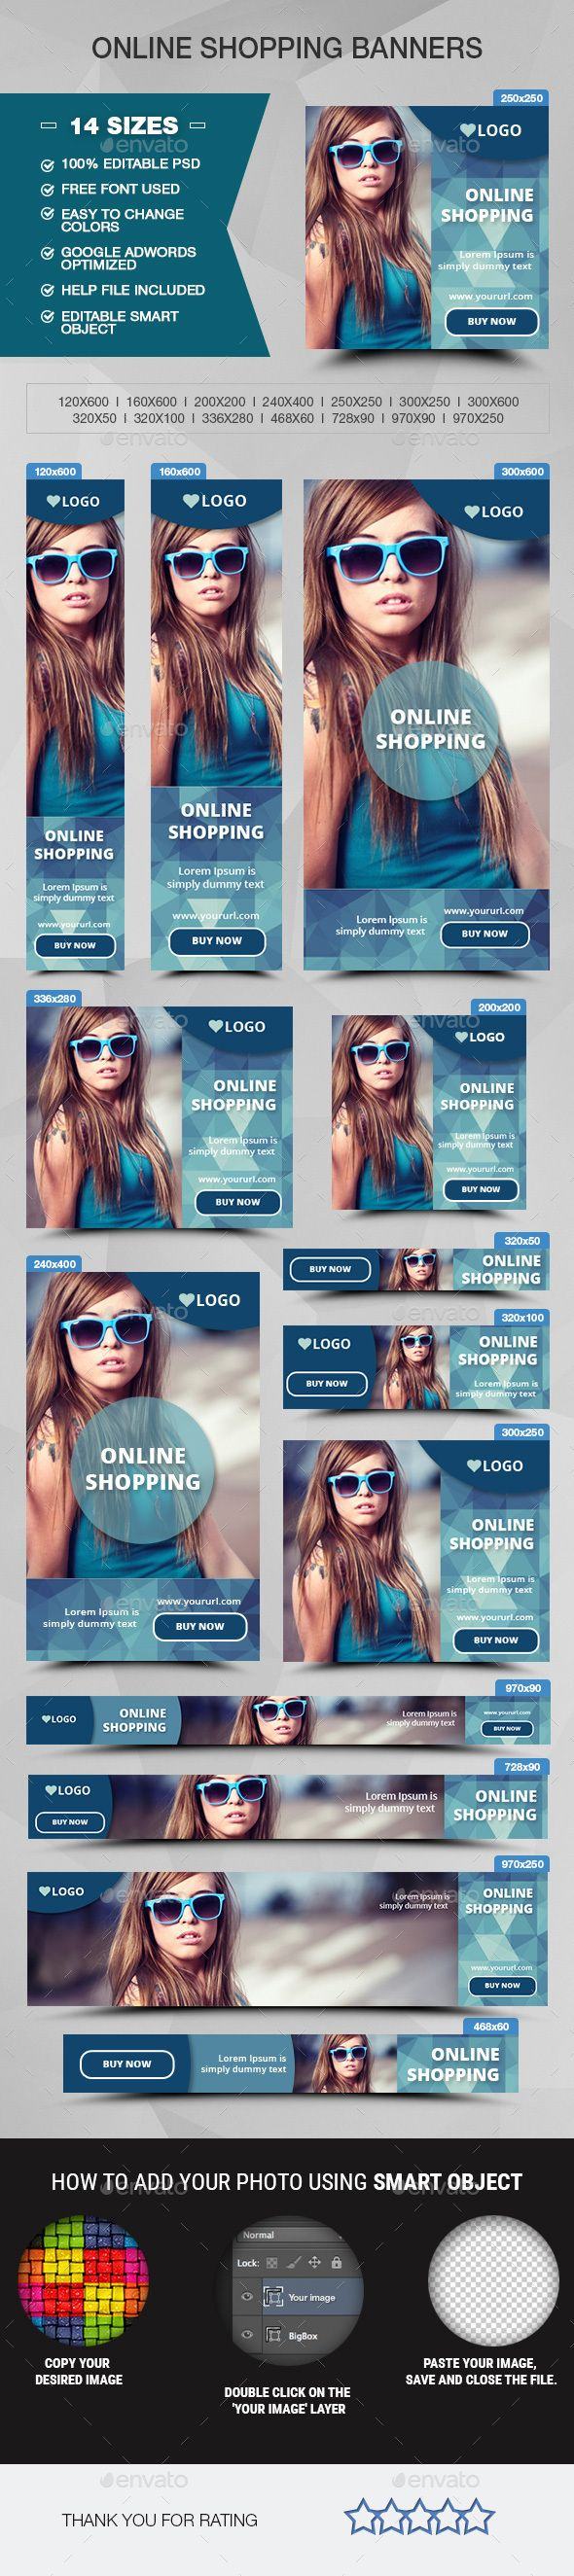 Online Shopping Web Banners Template PSD #ad #promotion #design Download: http://graphicriver.net/item/online-shopping-banners/14278134?ref=ksioks